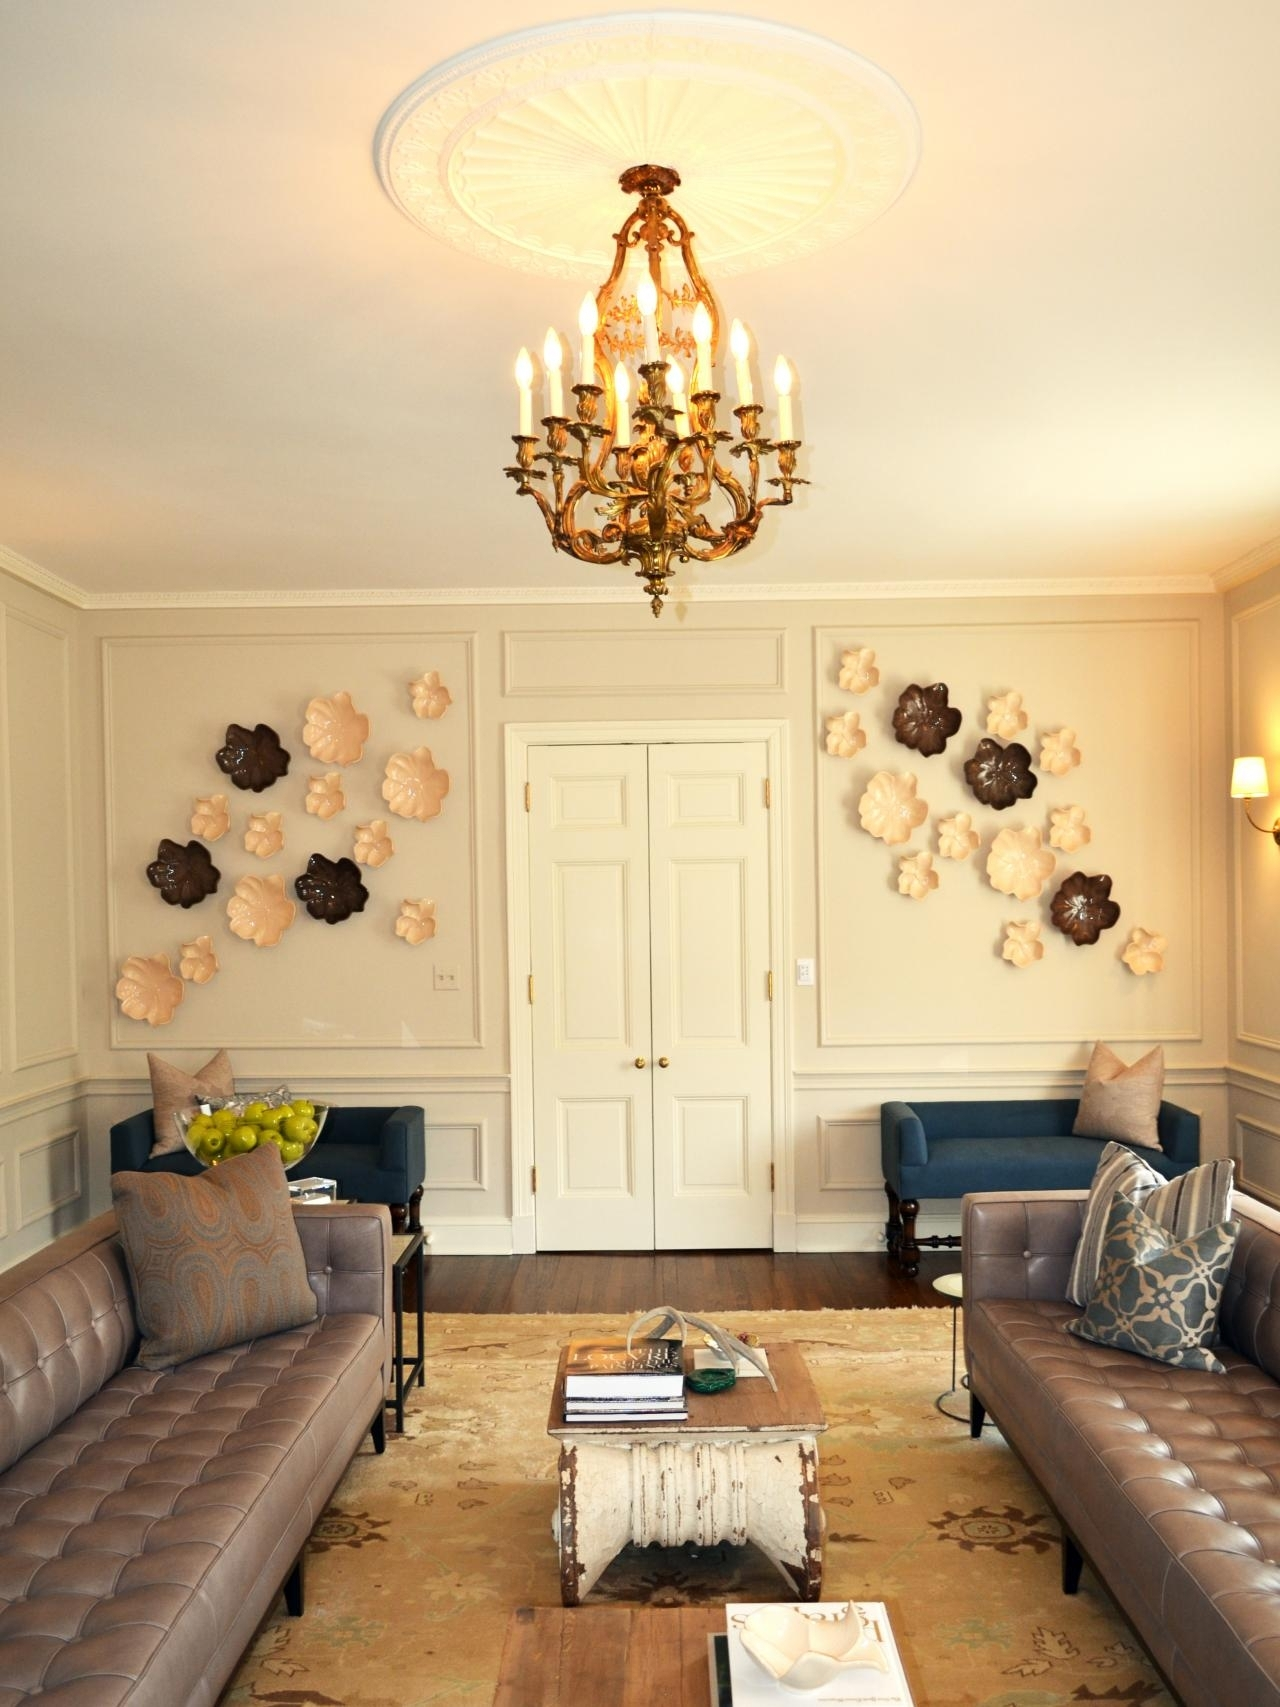 Fascinating 90 Ceiling Medallion Wall Art Decorating, Ceiling throughout Ceiling Medallion Wall Art (Image 13 of 20)